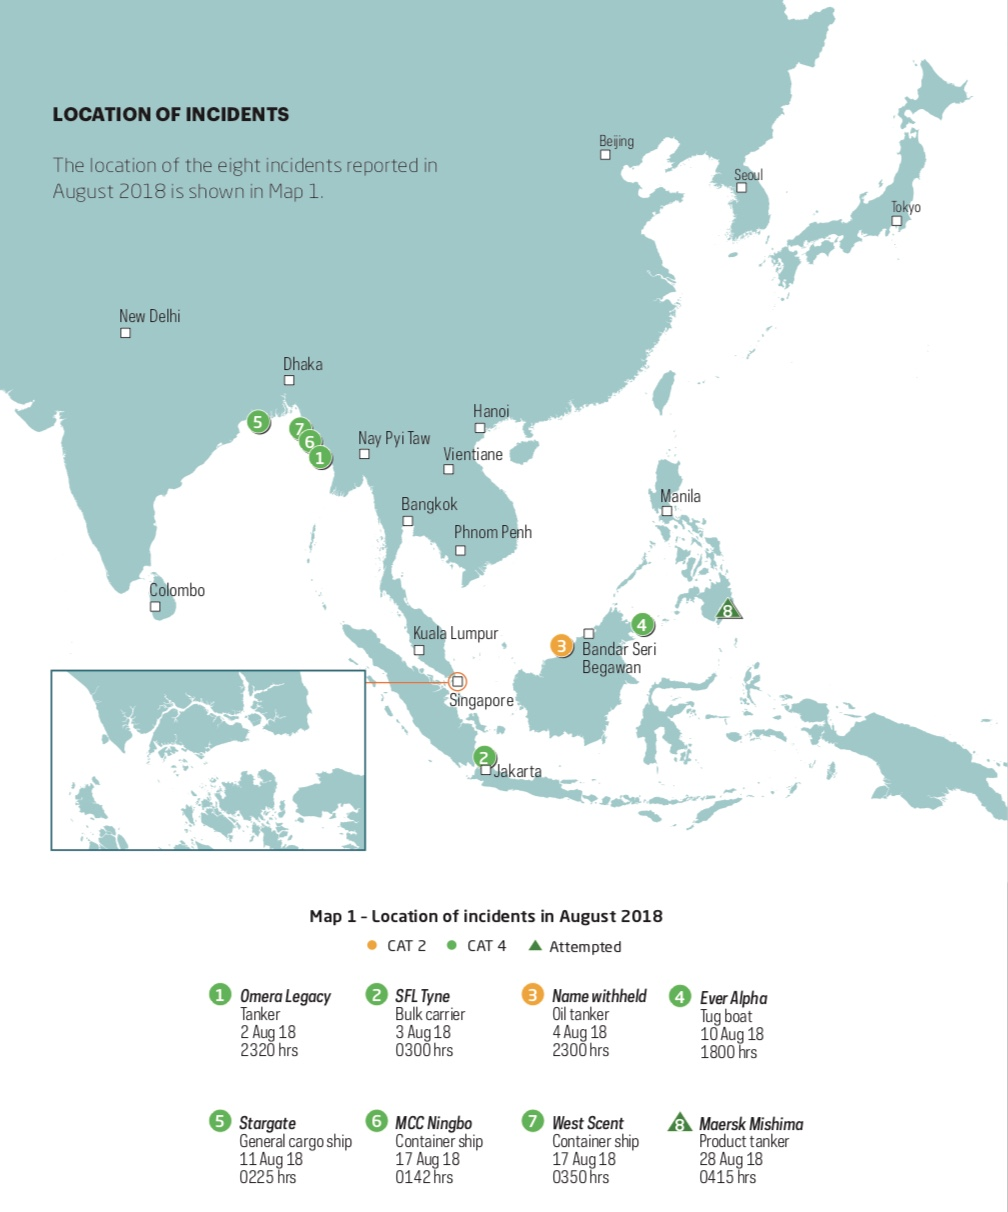 Piracy & Robbery Against Ships at Sea in Asia - Aug 2018 Report - ReCAAP ISC